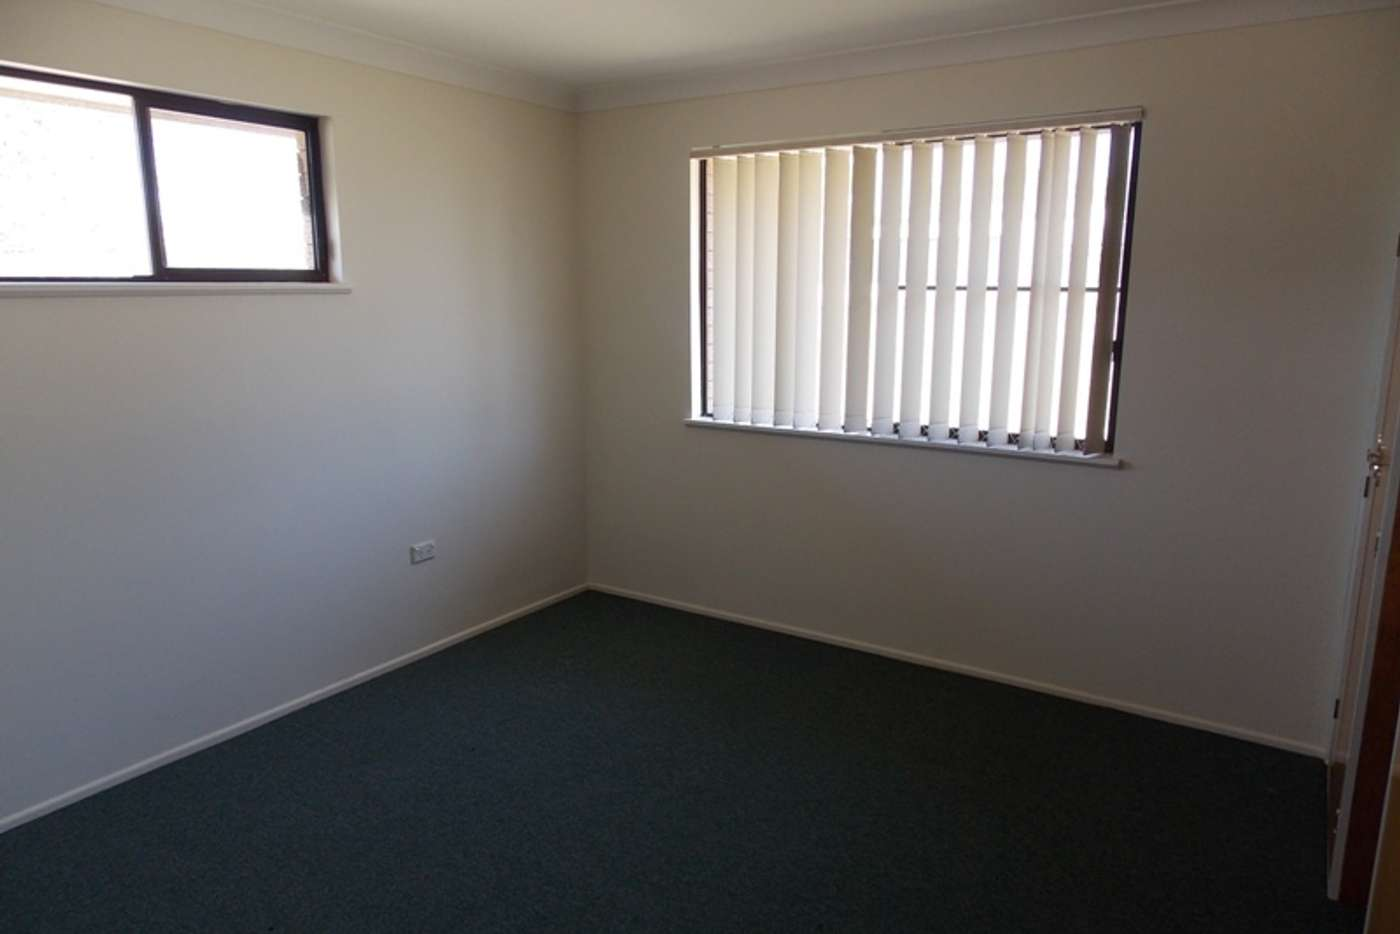 Seventh view of Homely house listing, 20 Grey Street, Nanango QLD 4615